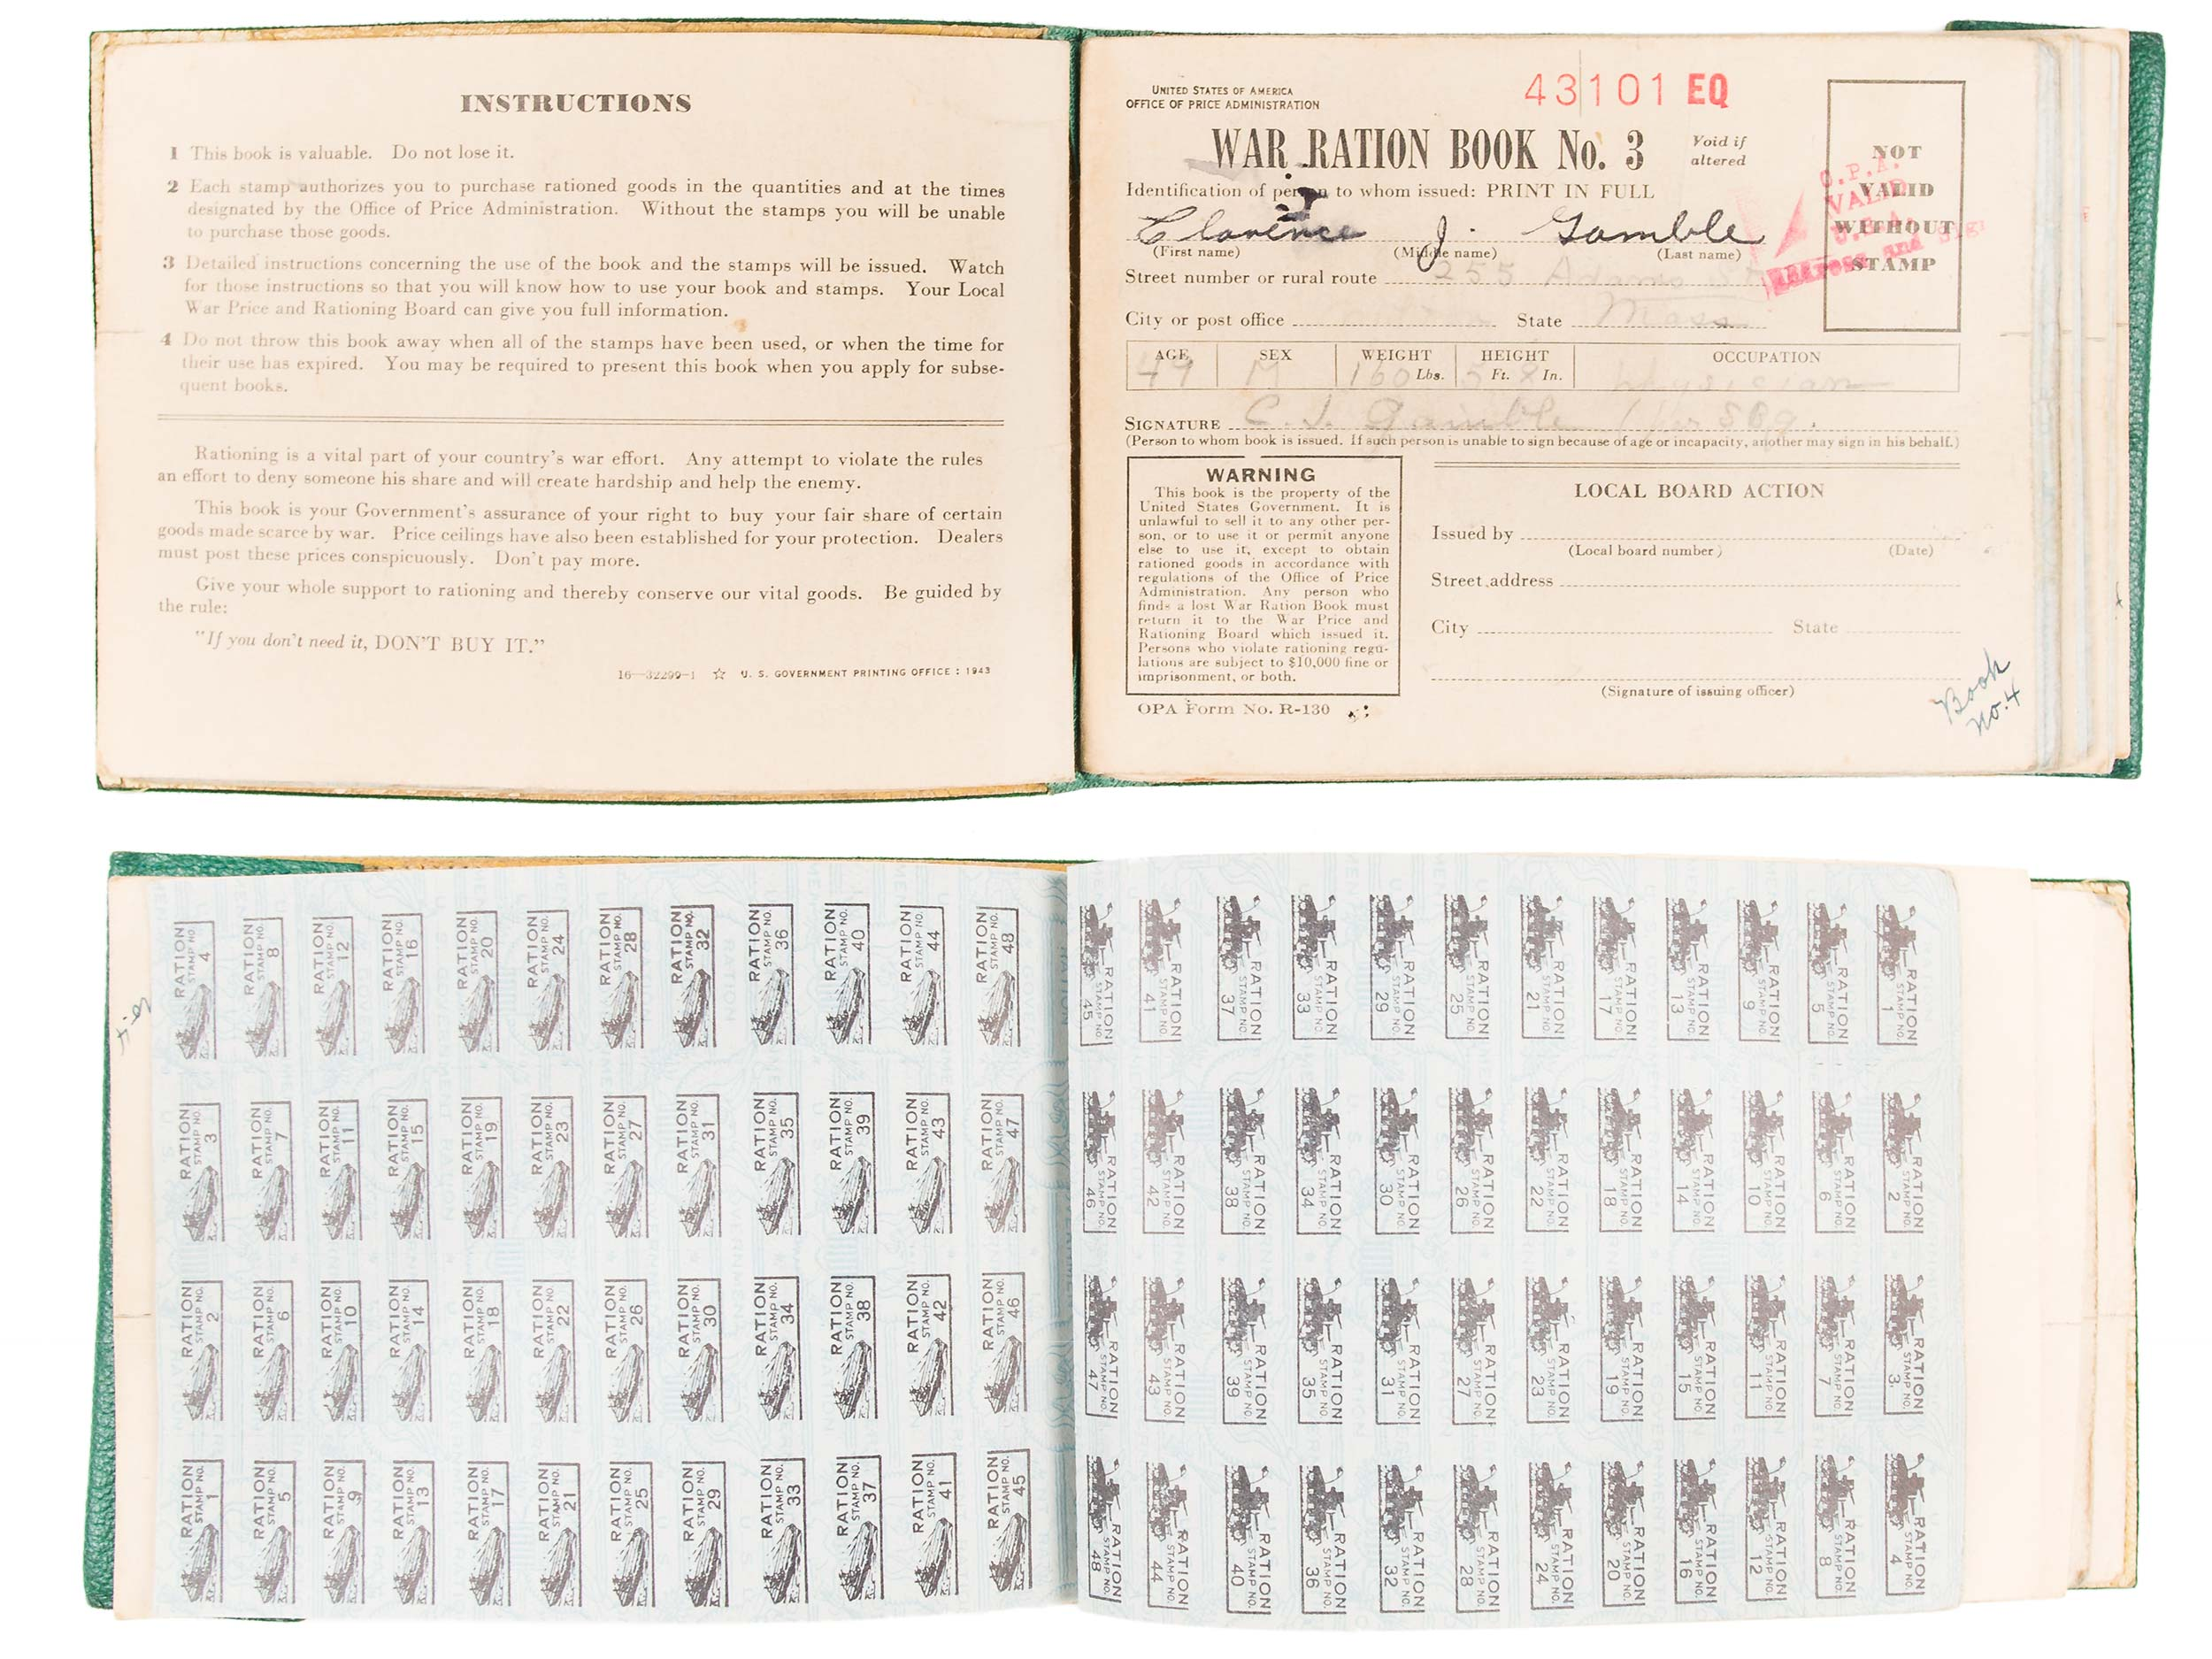 37C_ration-card_DSC4115_web_4x3_photo by Kevin Grady_Radcliffe Institute_courtesy of Schlesinger Library.jpg